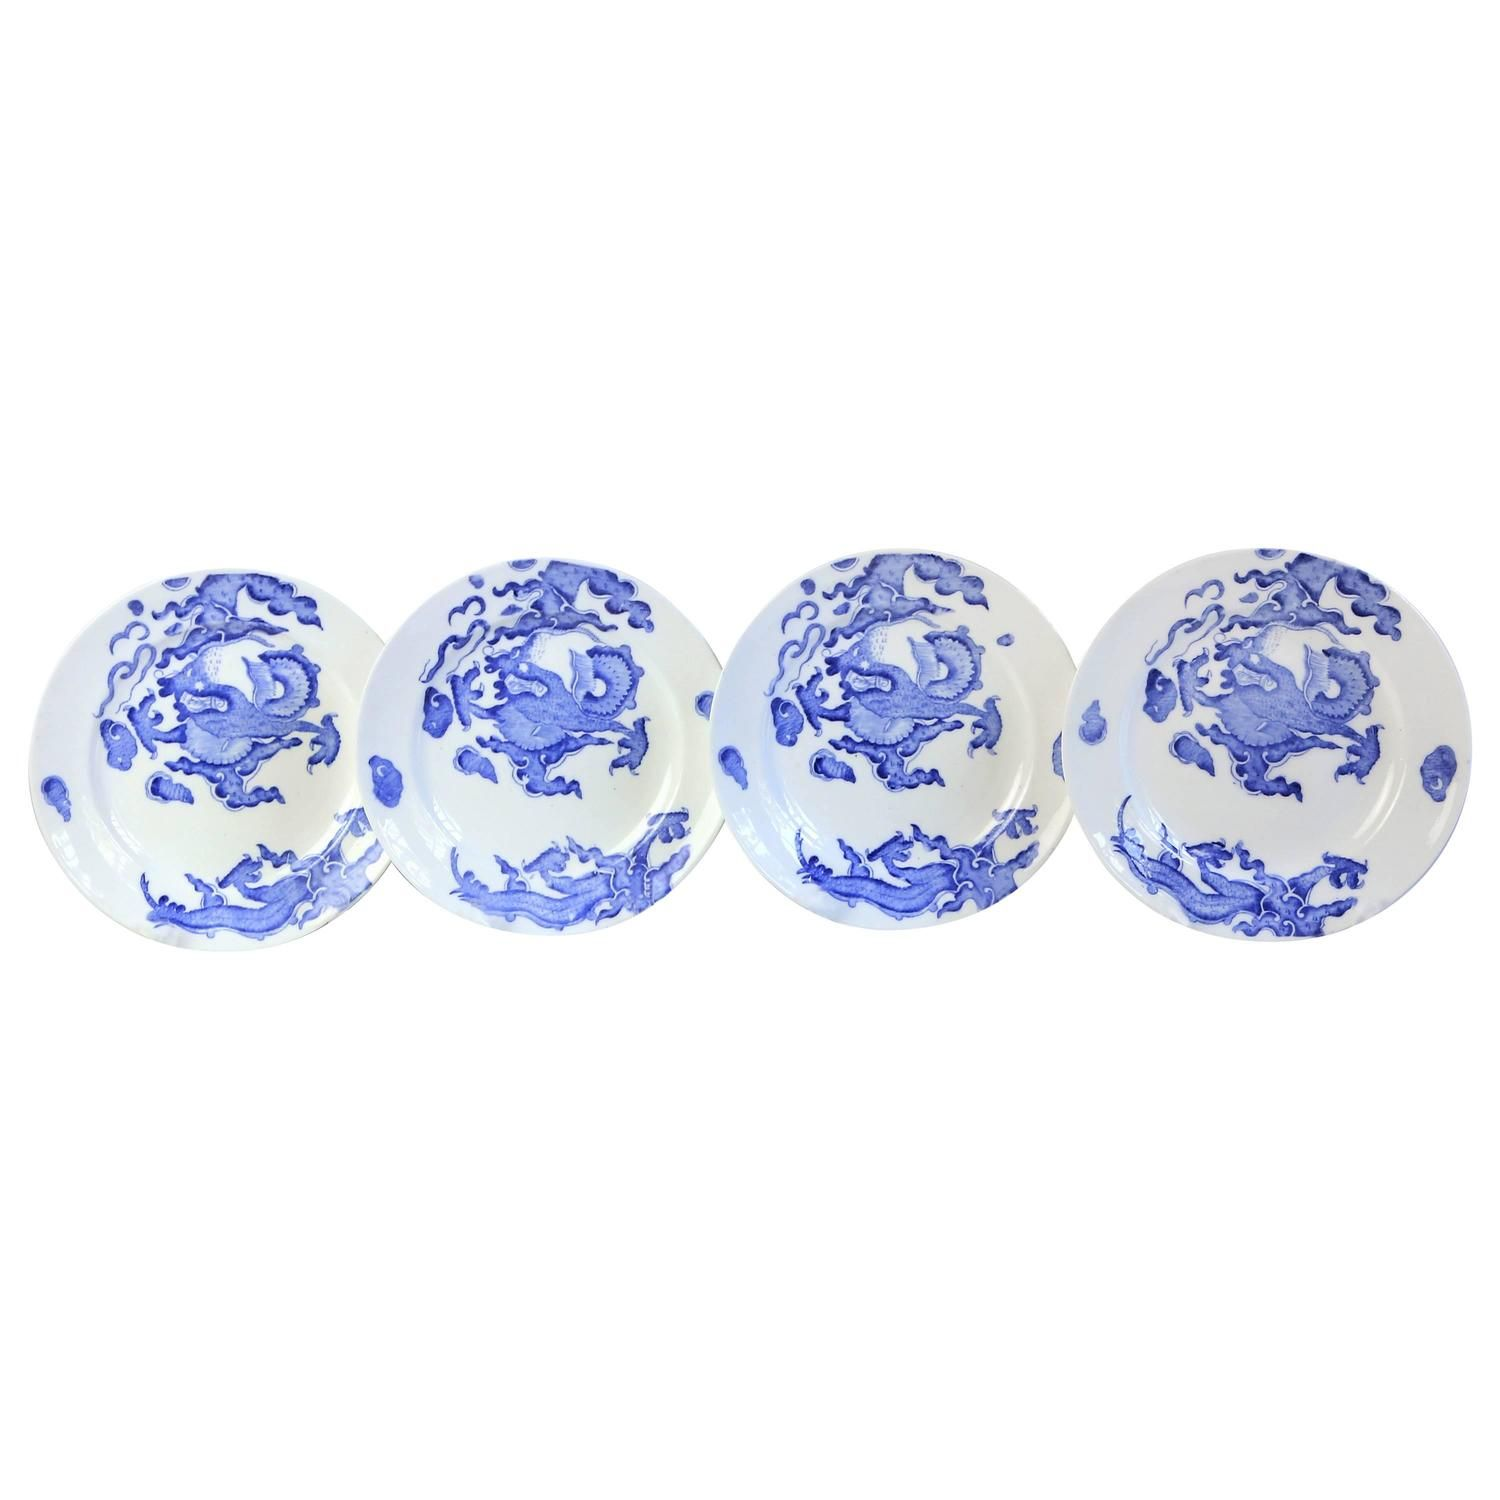 Set of Four Blue Dragon Plates by Coalport  sc 1 st  Pinterest & Set of Four Blue Dragon Plates by Coalport | Dragons Furniture and ...